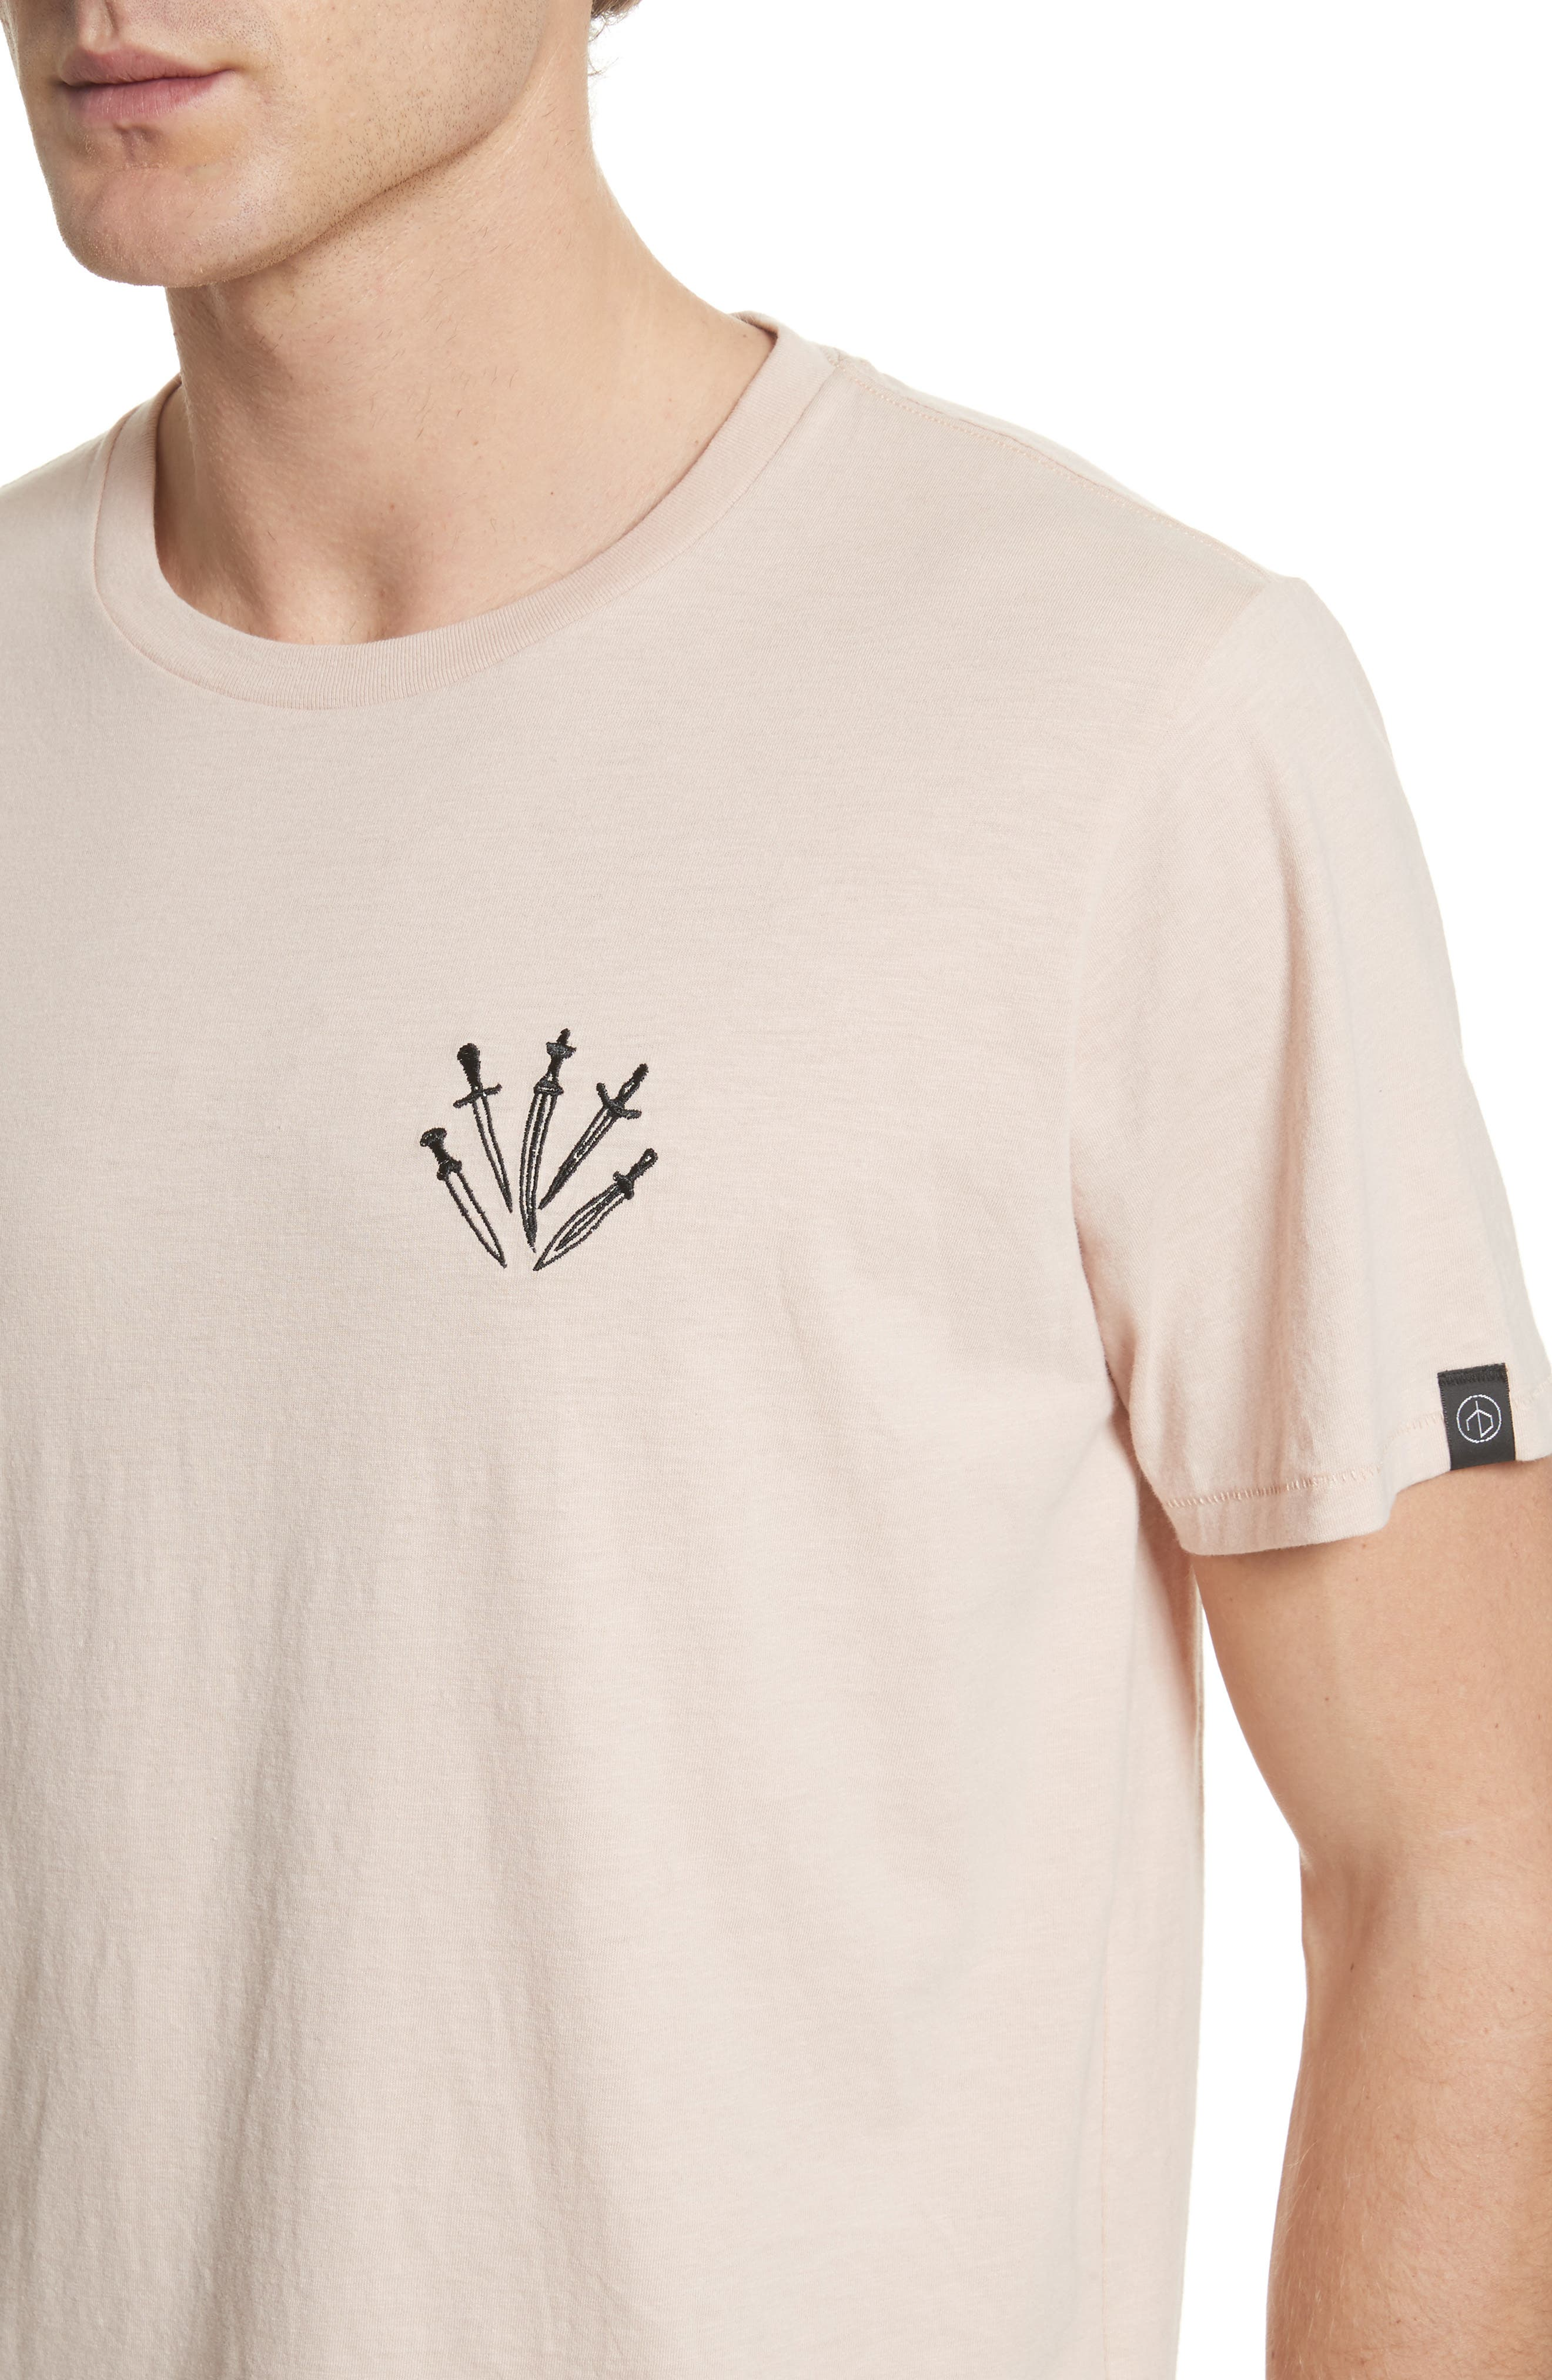 Dagger Embroidered T-Shirt,                             Alternate thumbnail 4, color,                             Pink